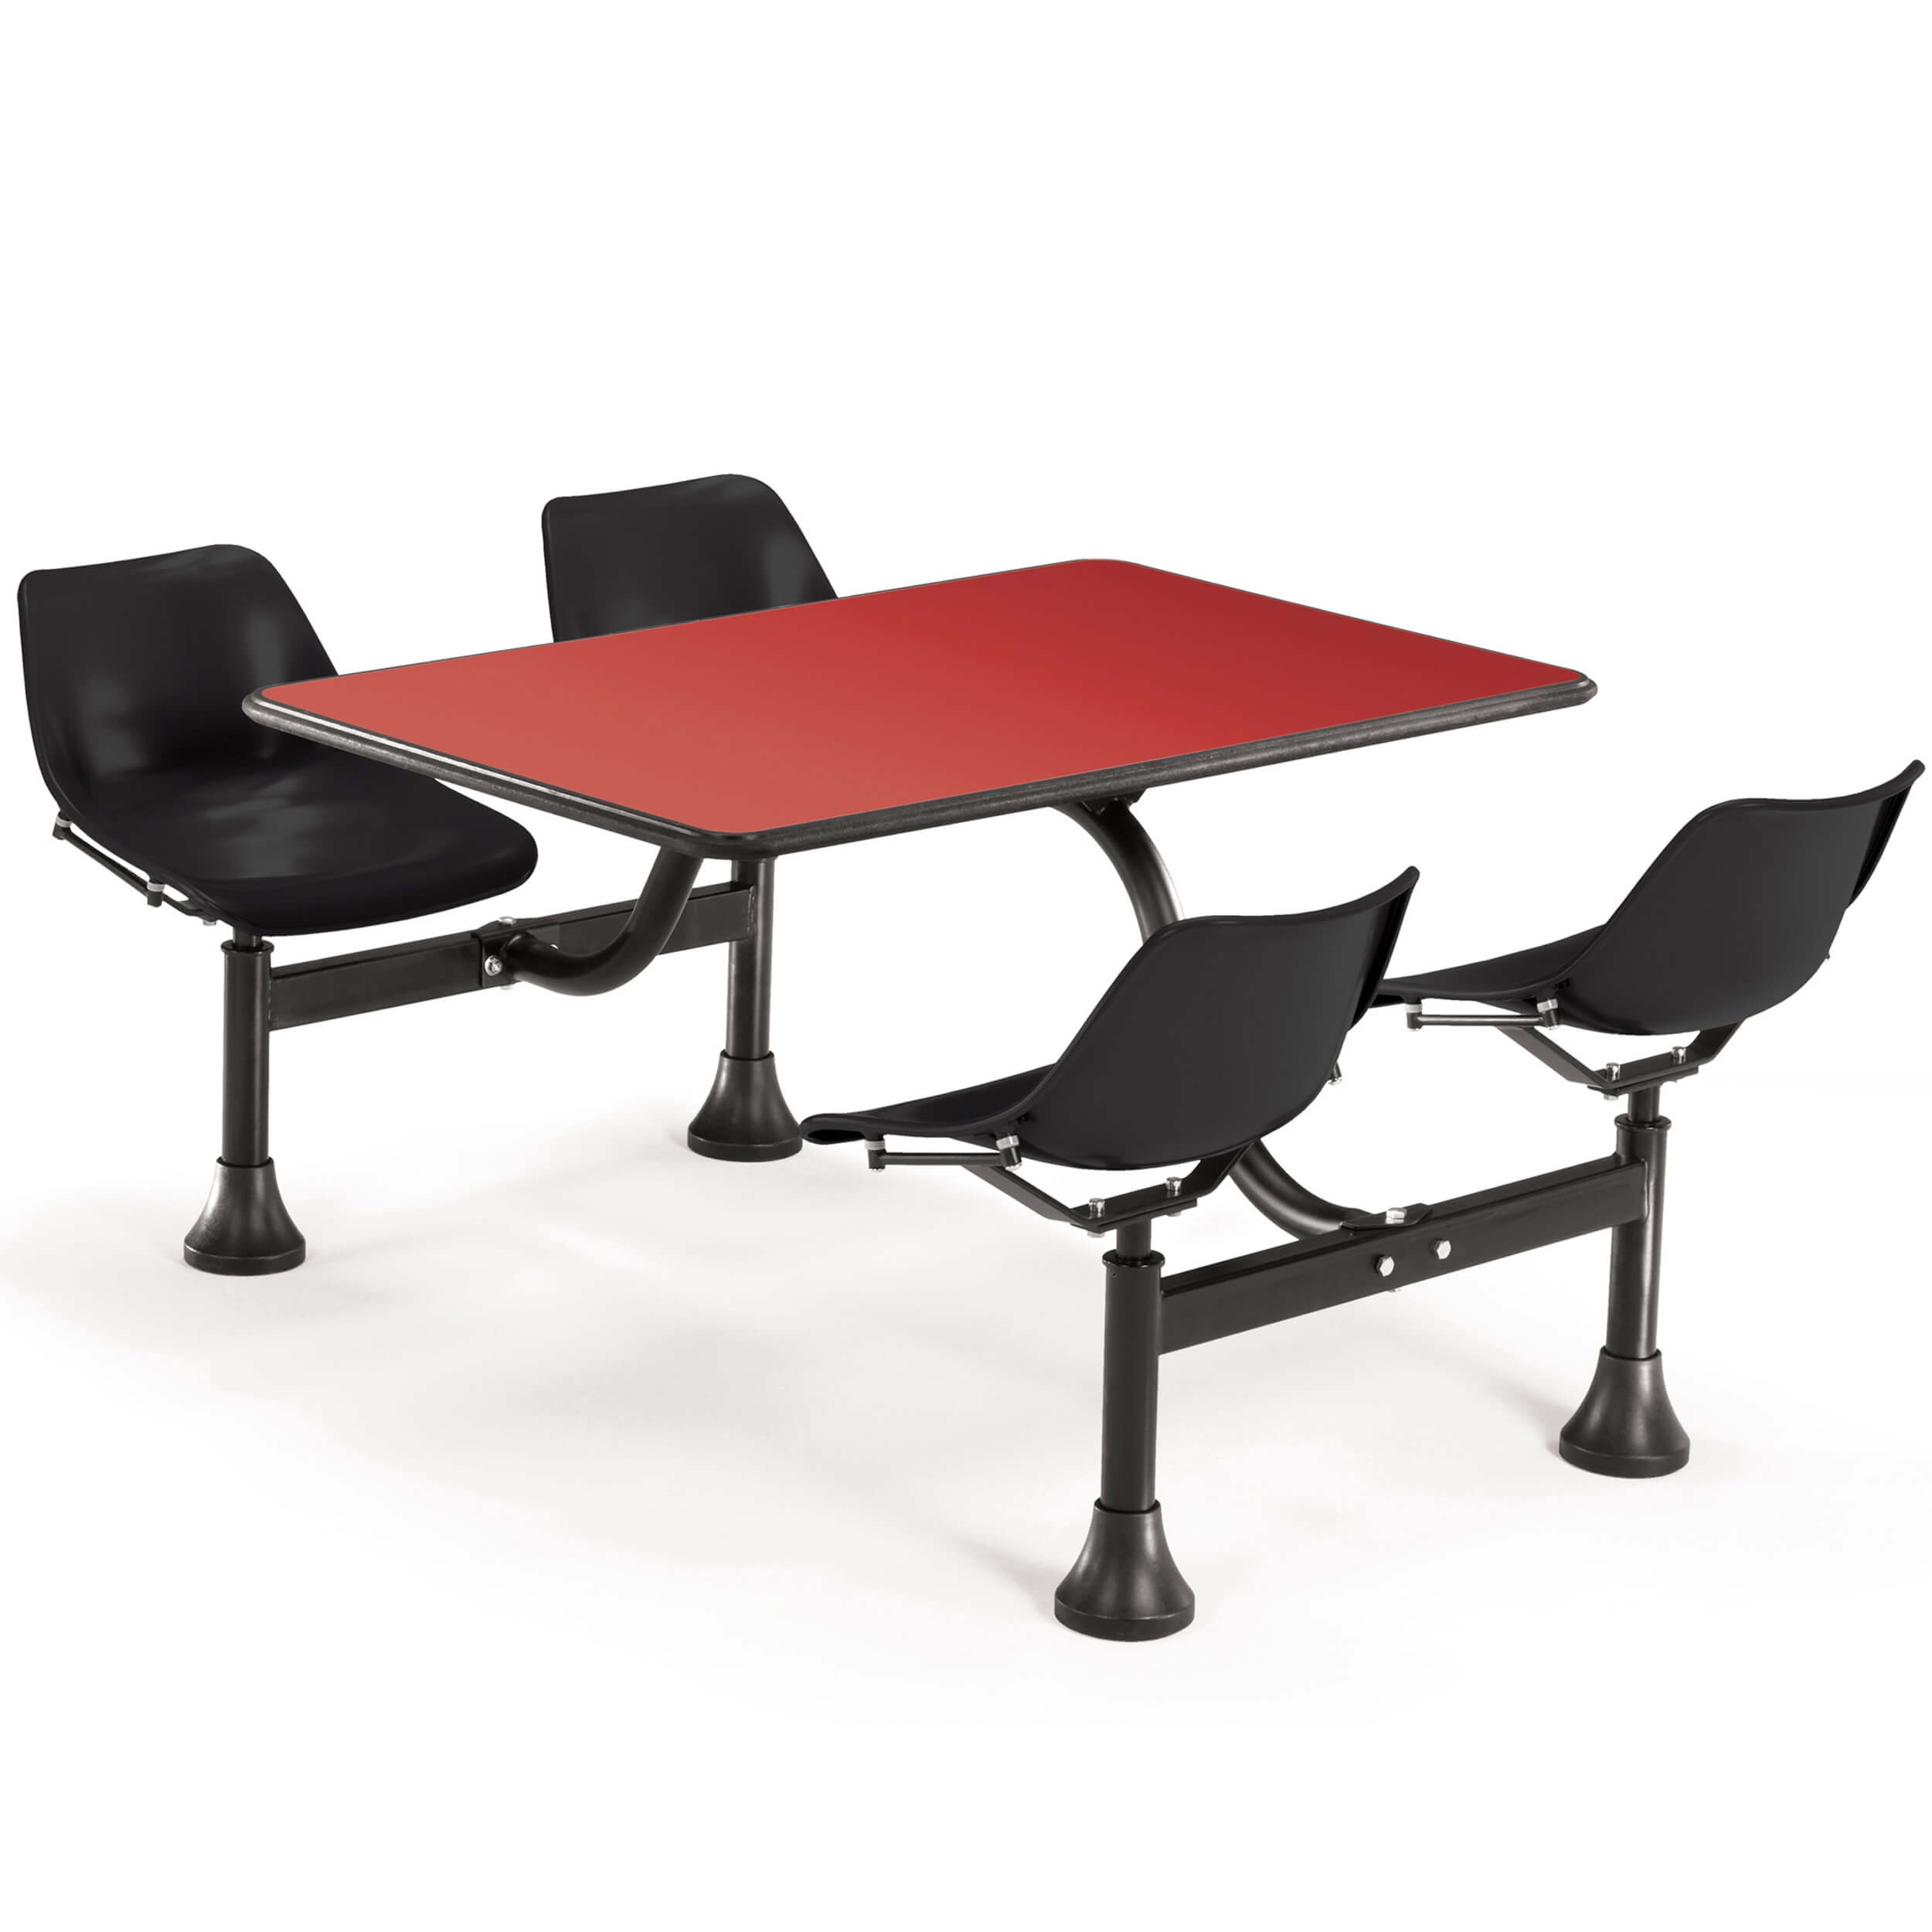 Dining booth CUB 1002 BLK RED OFM